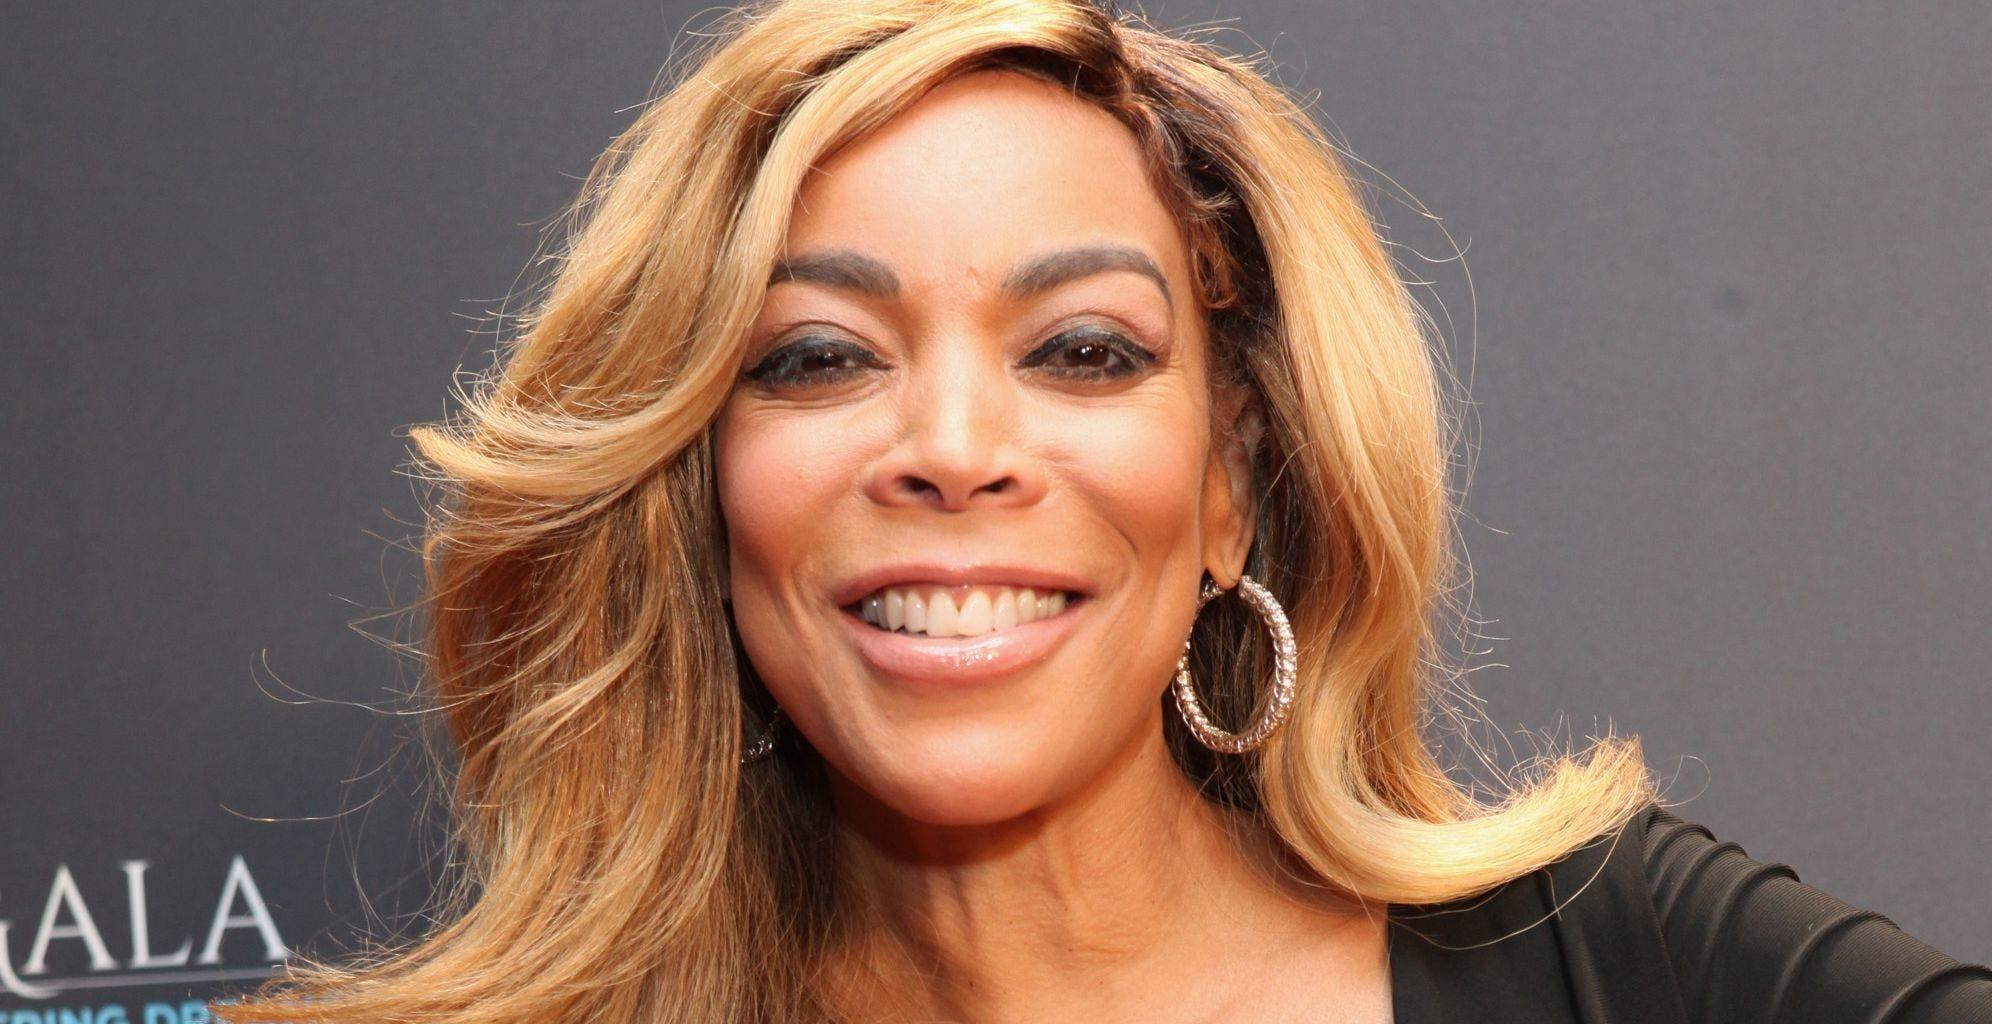 Wendy Williams Takes Break From Her Talk Show For Health Reasons - Details!